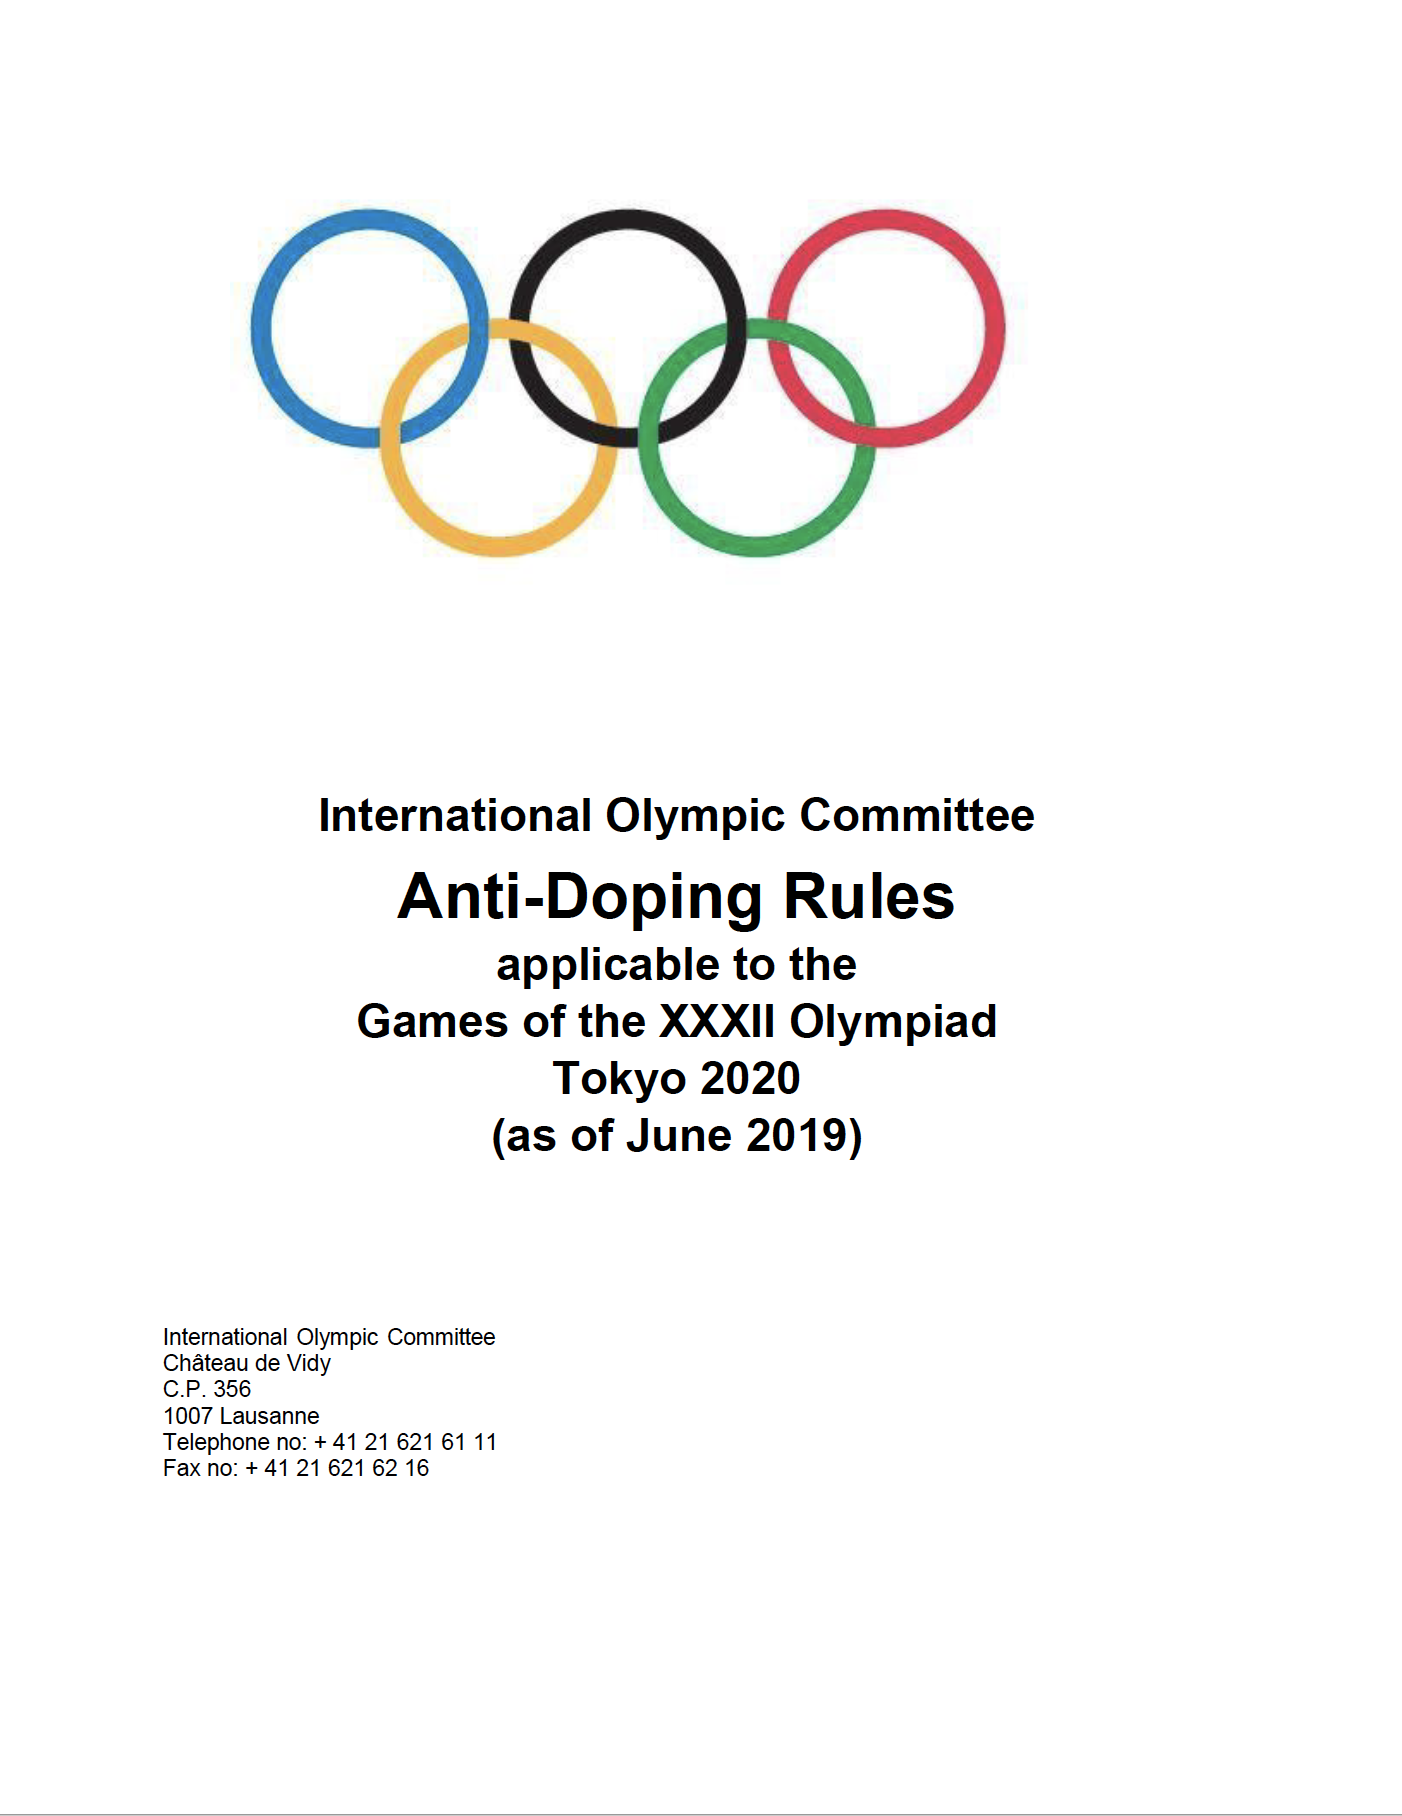 Tokyo 2020 Anti-Doping Rules